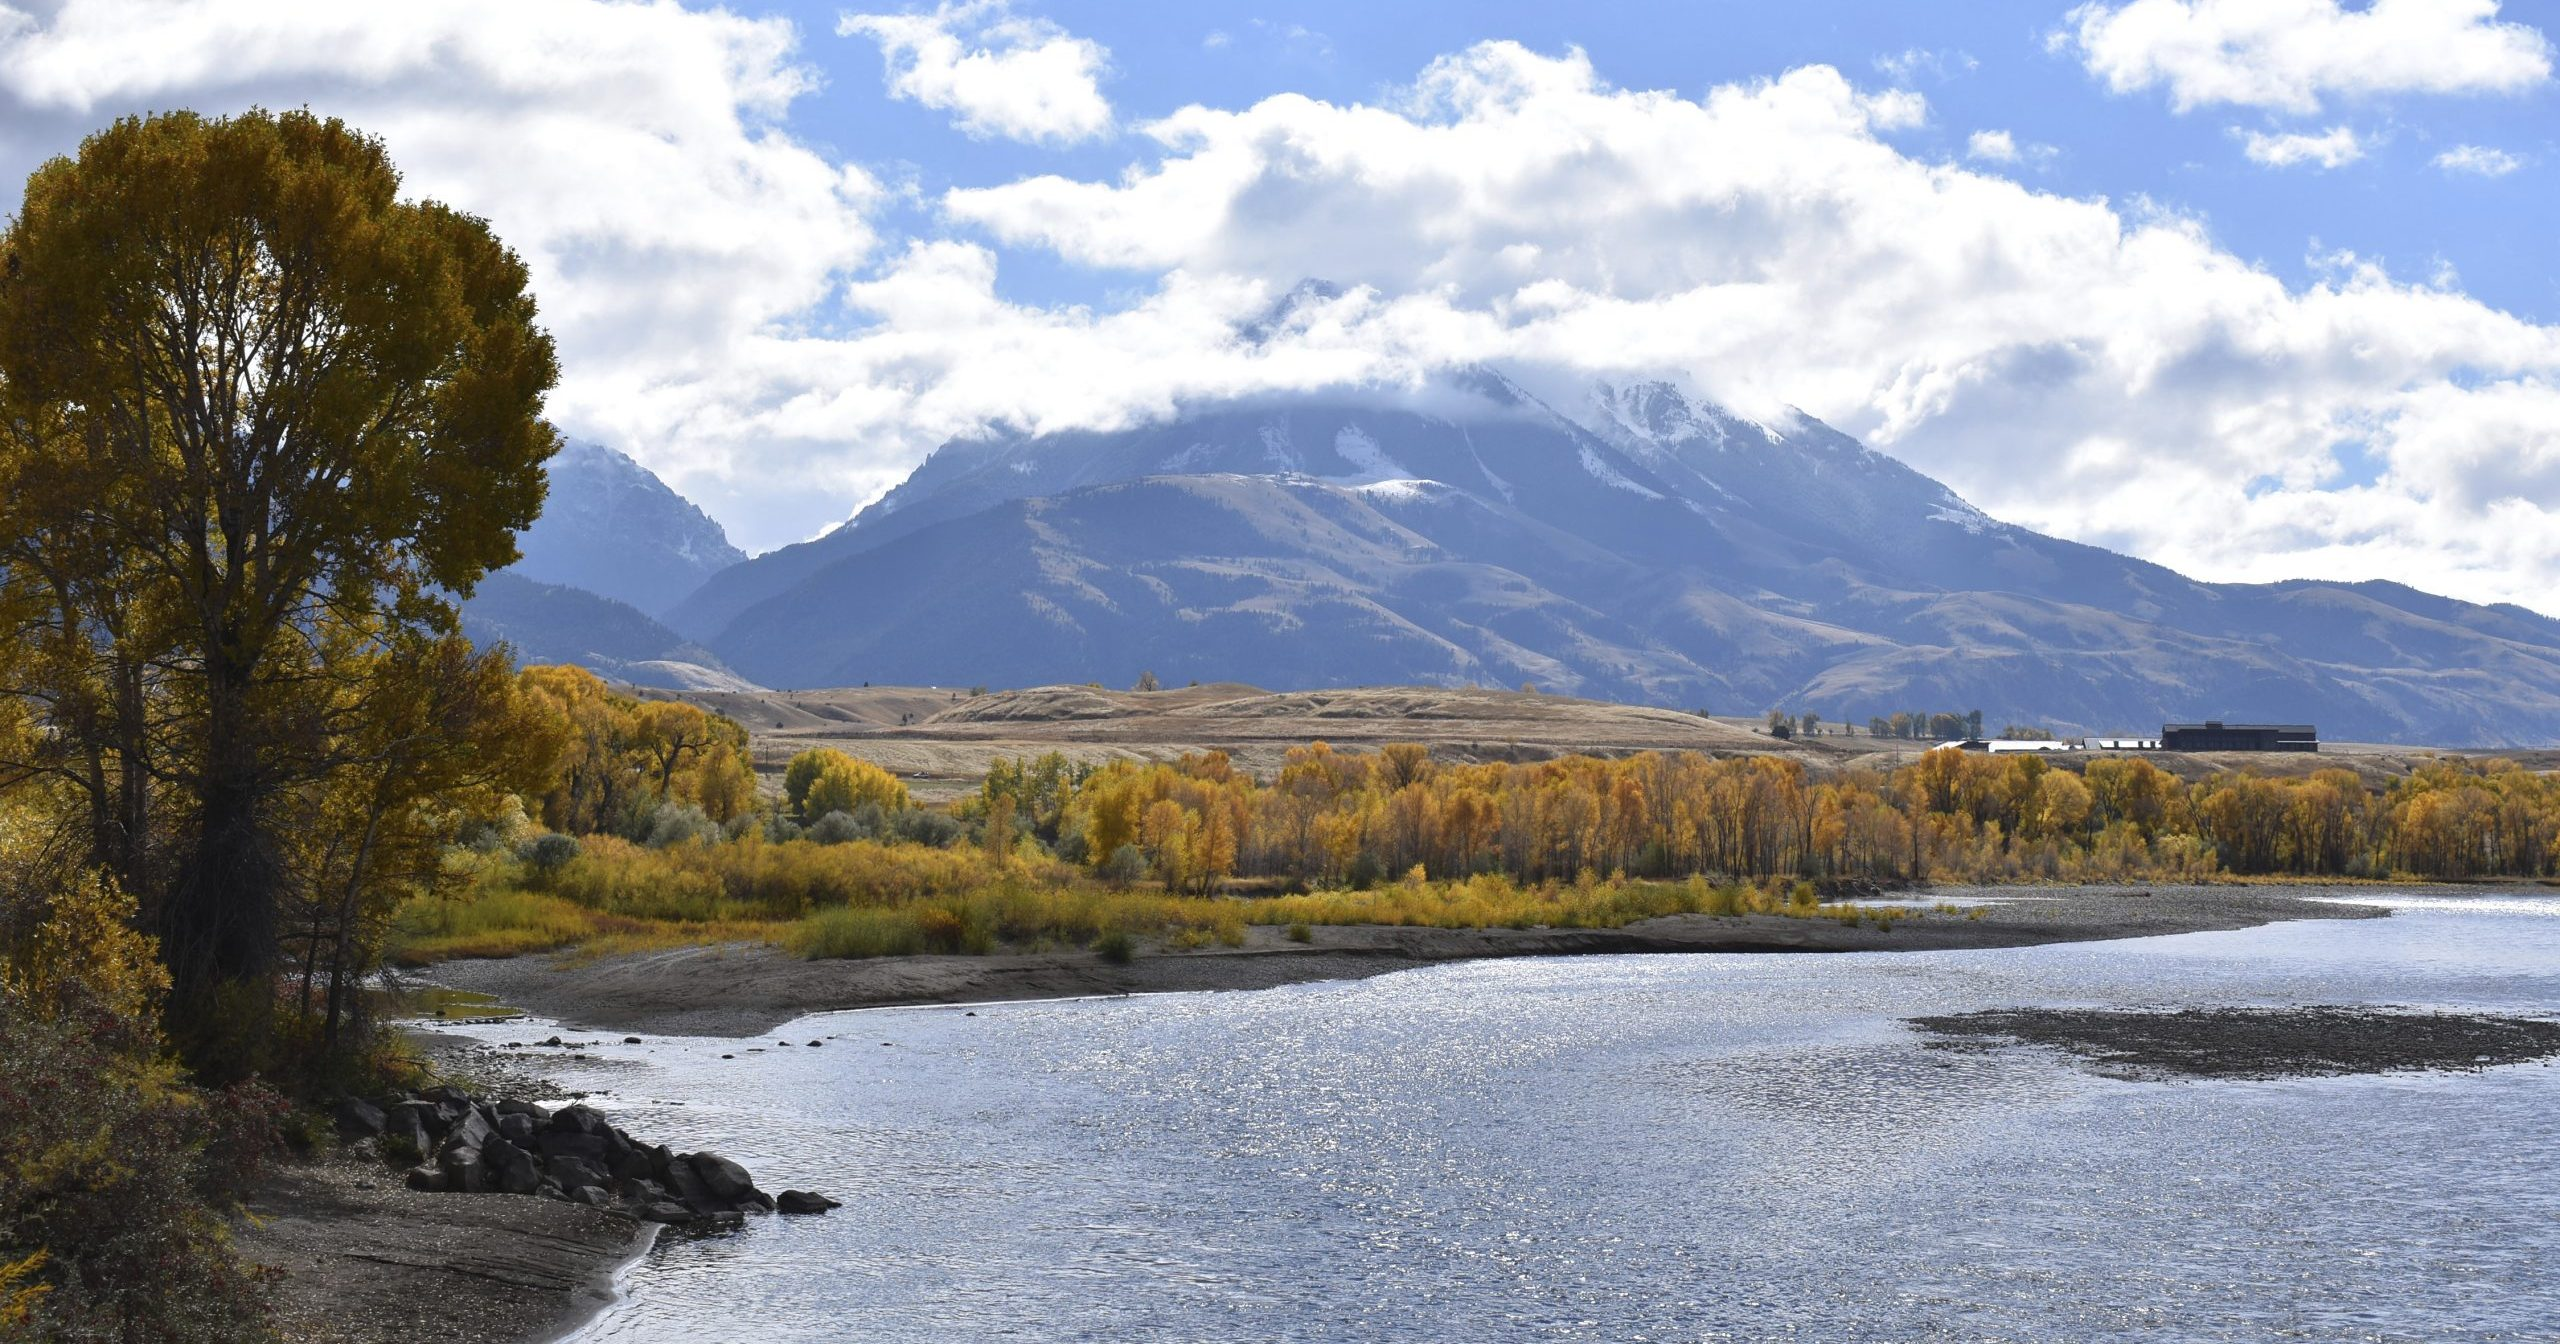 In this Oct. 8, 2018, file photo, Emigrant Peak is seen rising above the Paradise Valley and the Yellowstone River near Emigrant, Montana. Lawmakers have reached bipartisan agreement on a deal to double spending on a popular conservation program and devote nearly $2 billion a year to improve and maintain national parks.